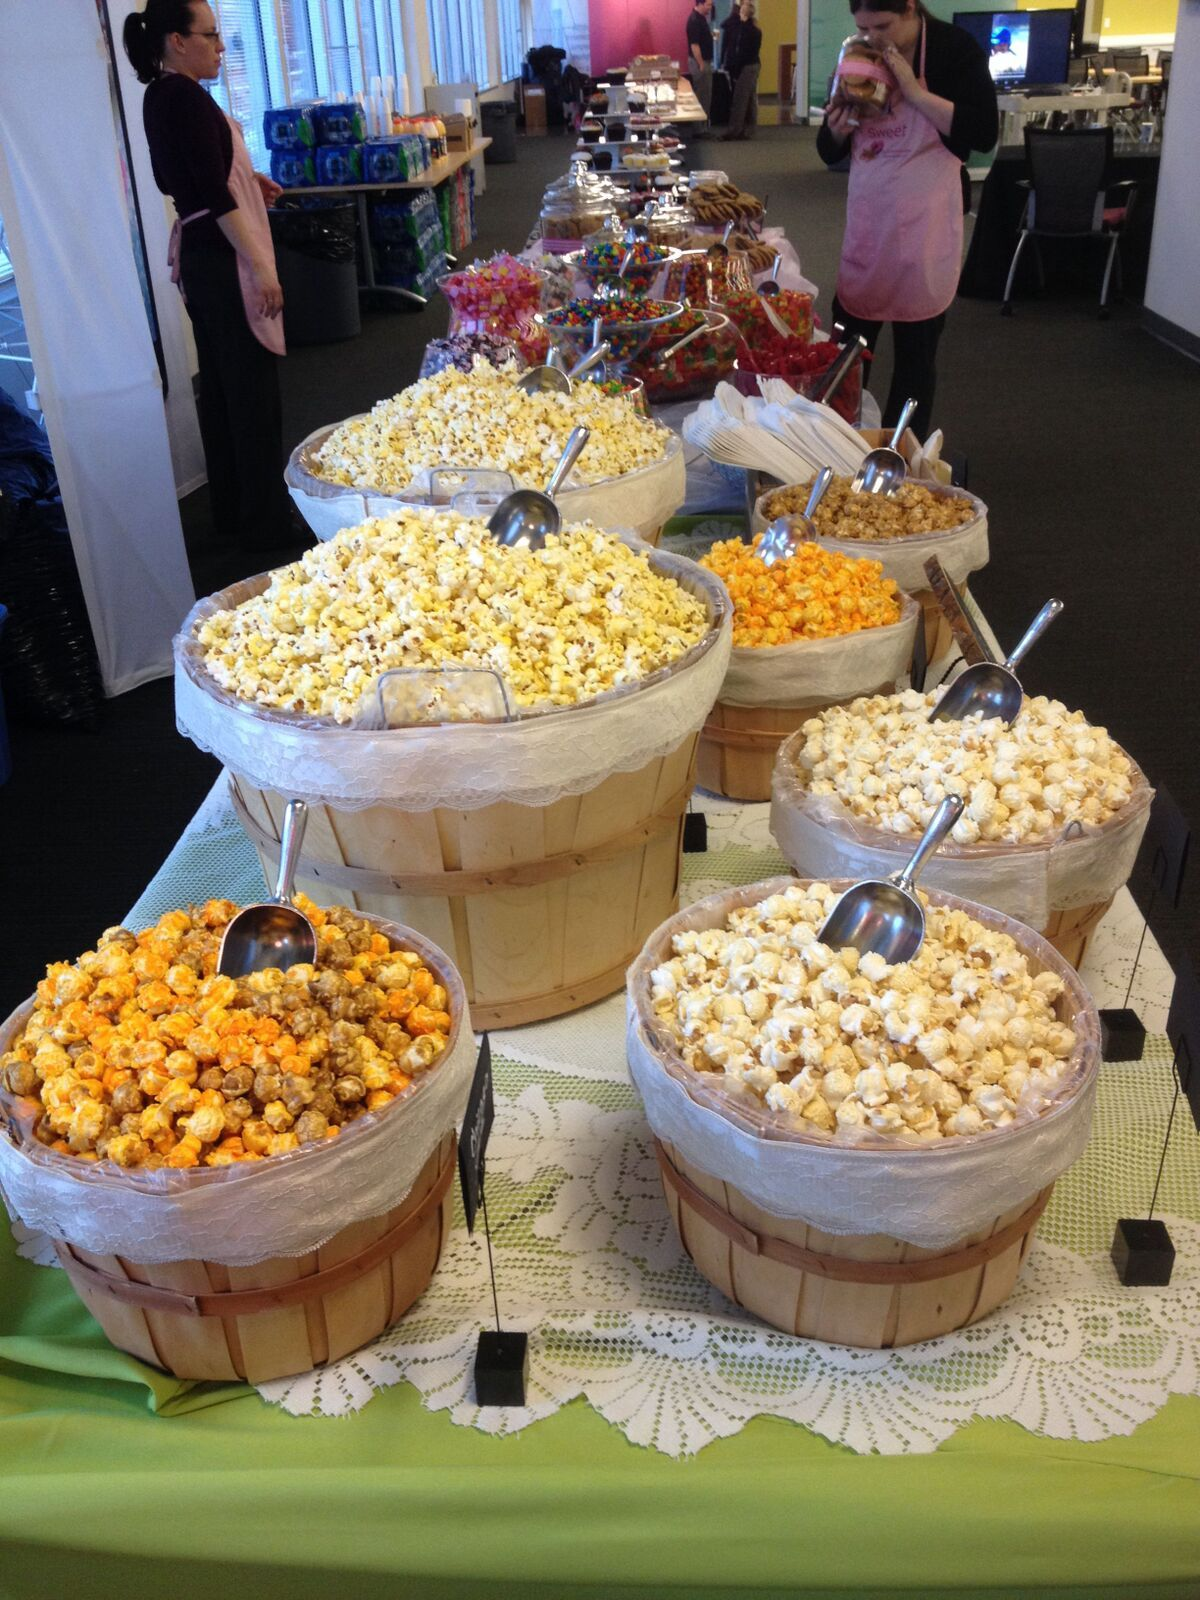 Cheap And Easy DIY Popcorn Bar is part of Diy popcorn - Setting up a popcorn bar is really easy  Whether you are planning a popcorn bar for a home movie with your family, a backyard movie for the whole neighborhood, a party, a baby shower or even a wedding  the basics are the same  The Easy Way To Set Up A DIY Popcorn Bar If you are planning your popcorn bar for a small family, your livingroom table may be big enough  However, the more people, the more popcorn you will need and therefore, more space  If you are setting up a buffet table for lots of people, set up